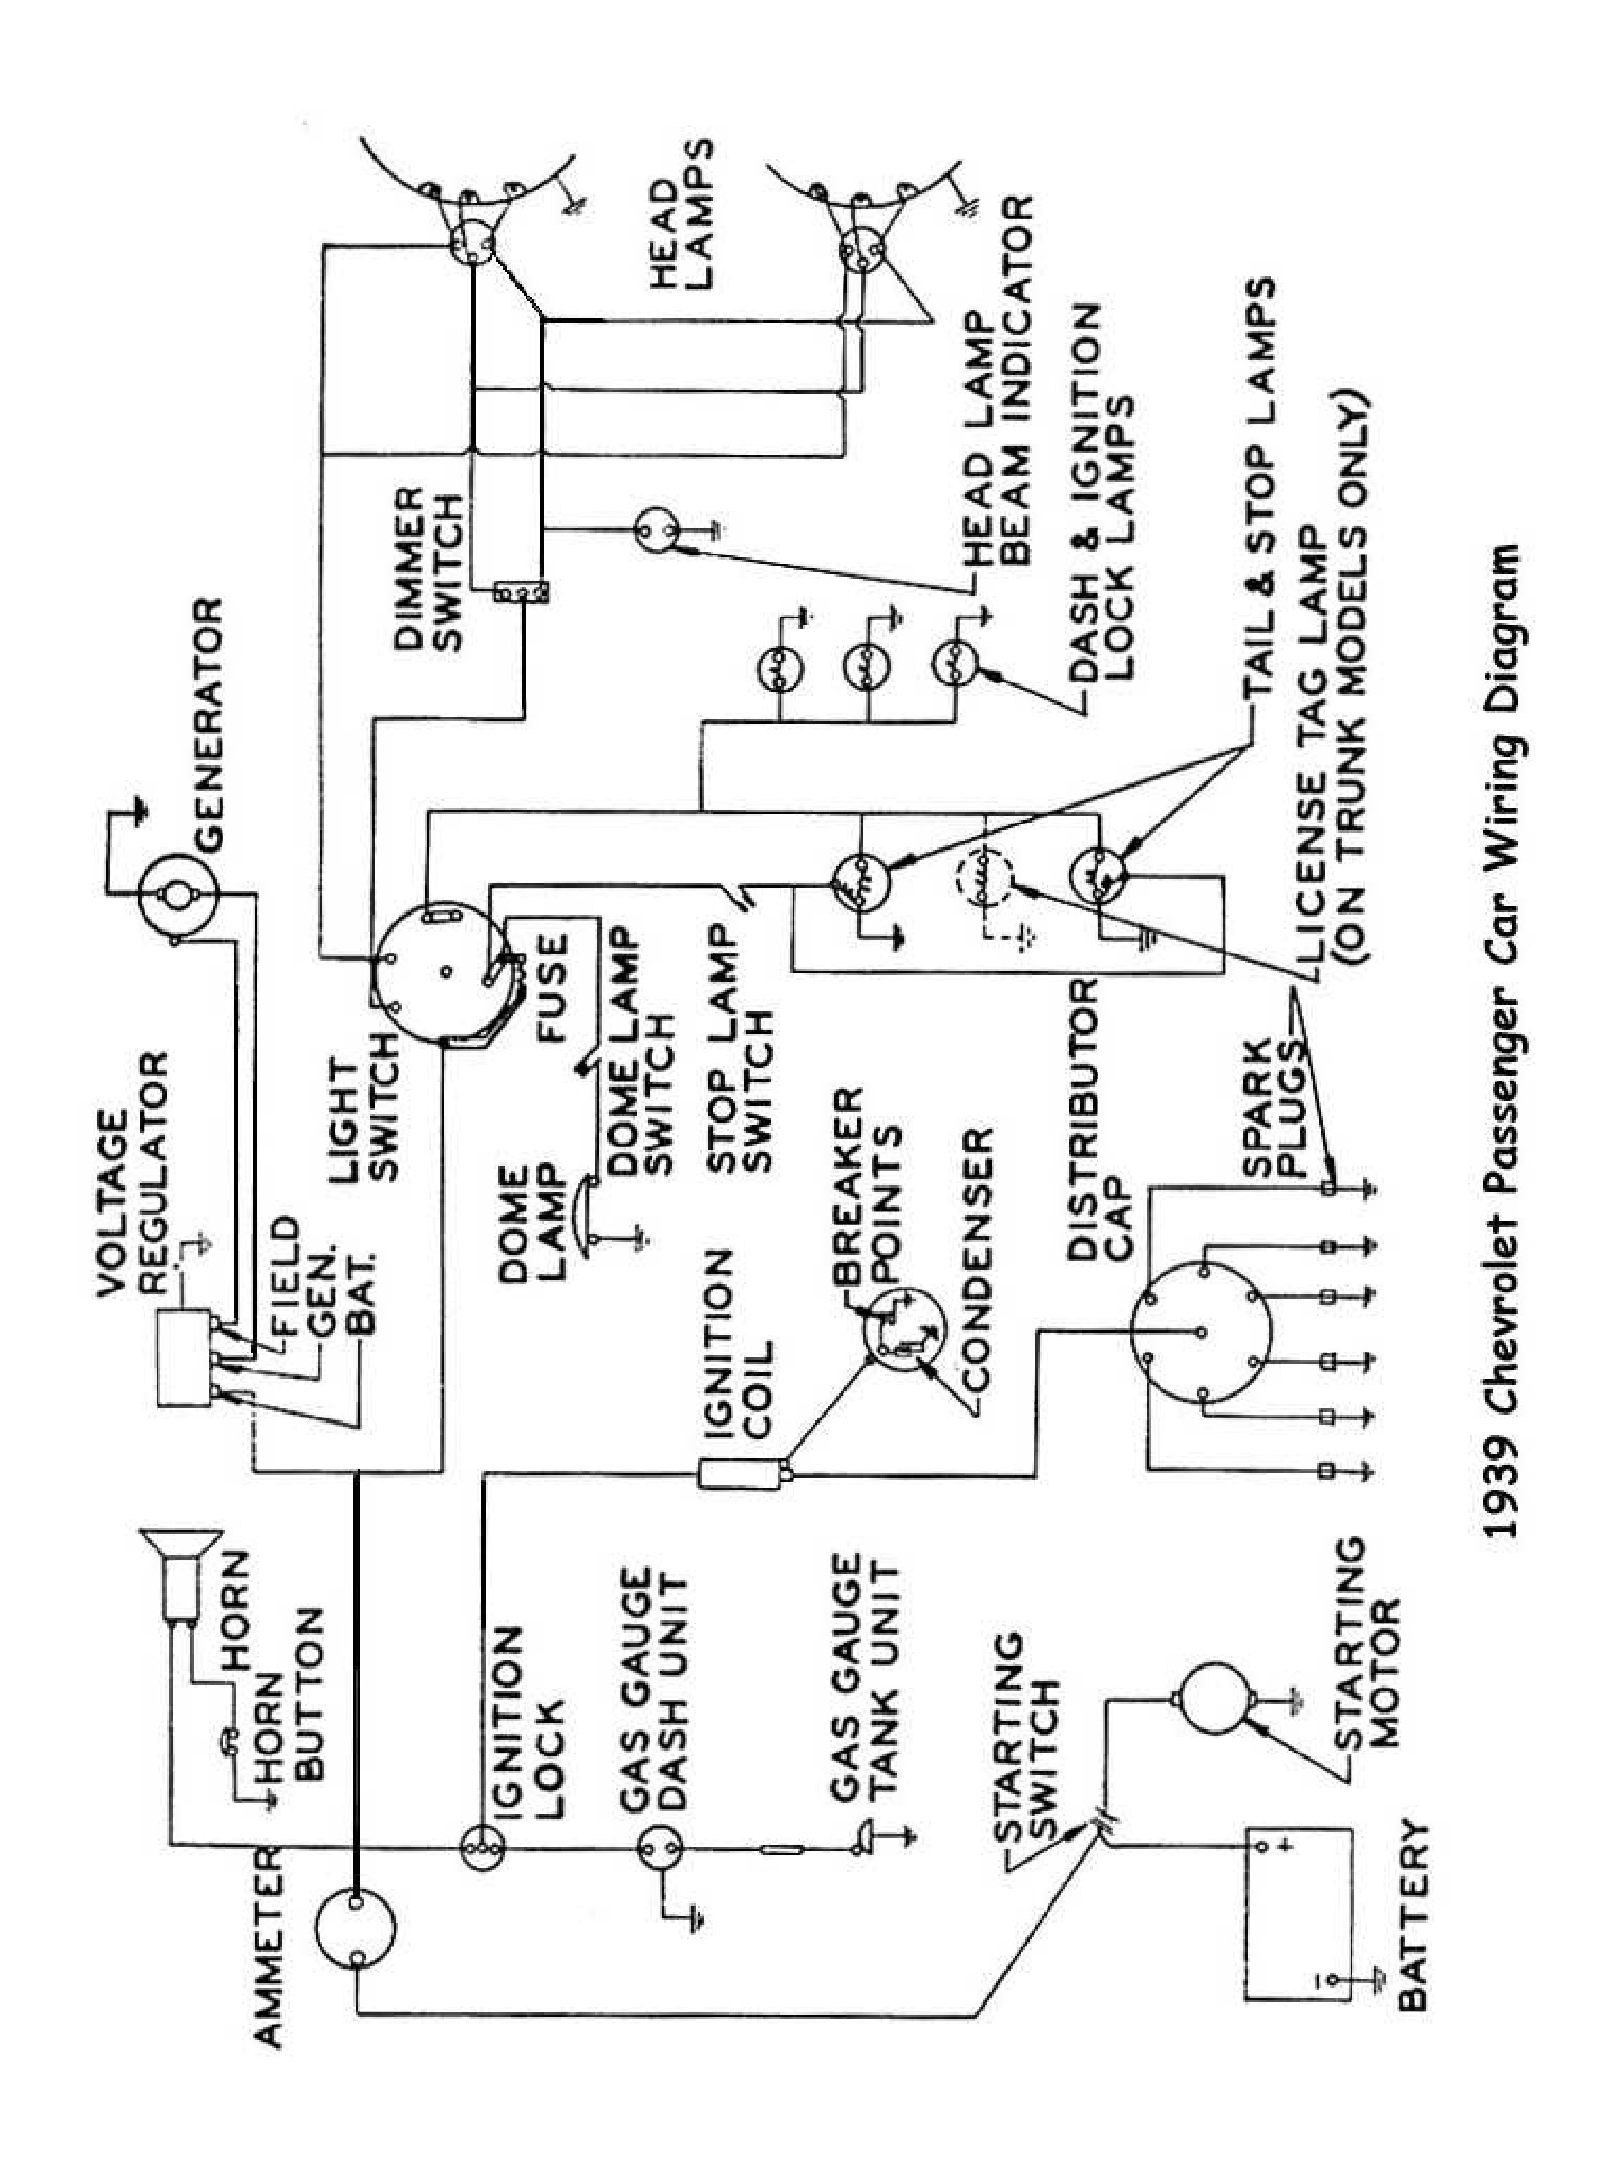 Basic ignition wiring diagram awesome ignition wiring diagram diagram of basic ignition wiring diagram ignition coil